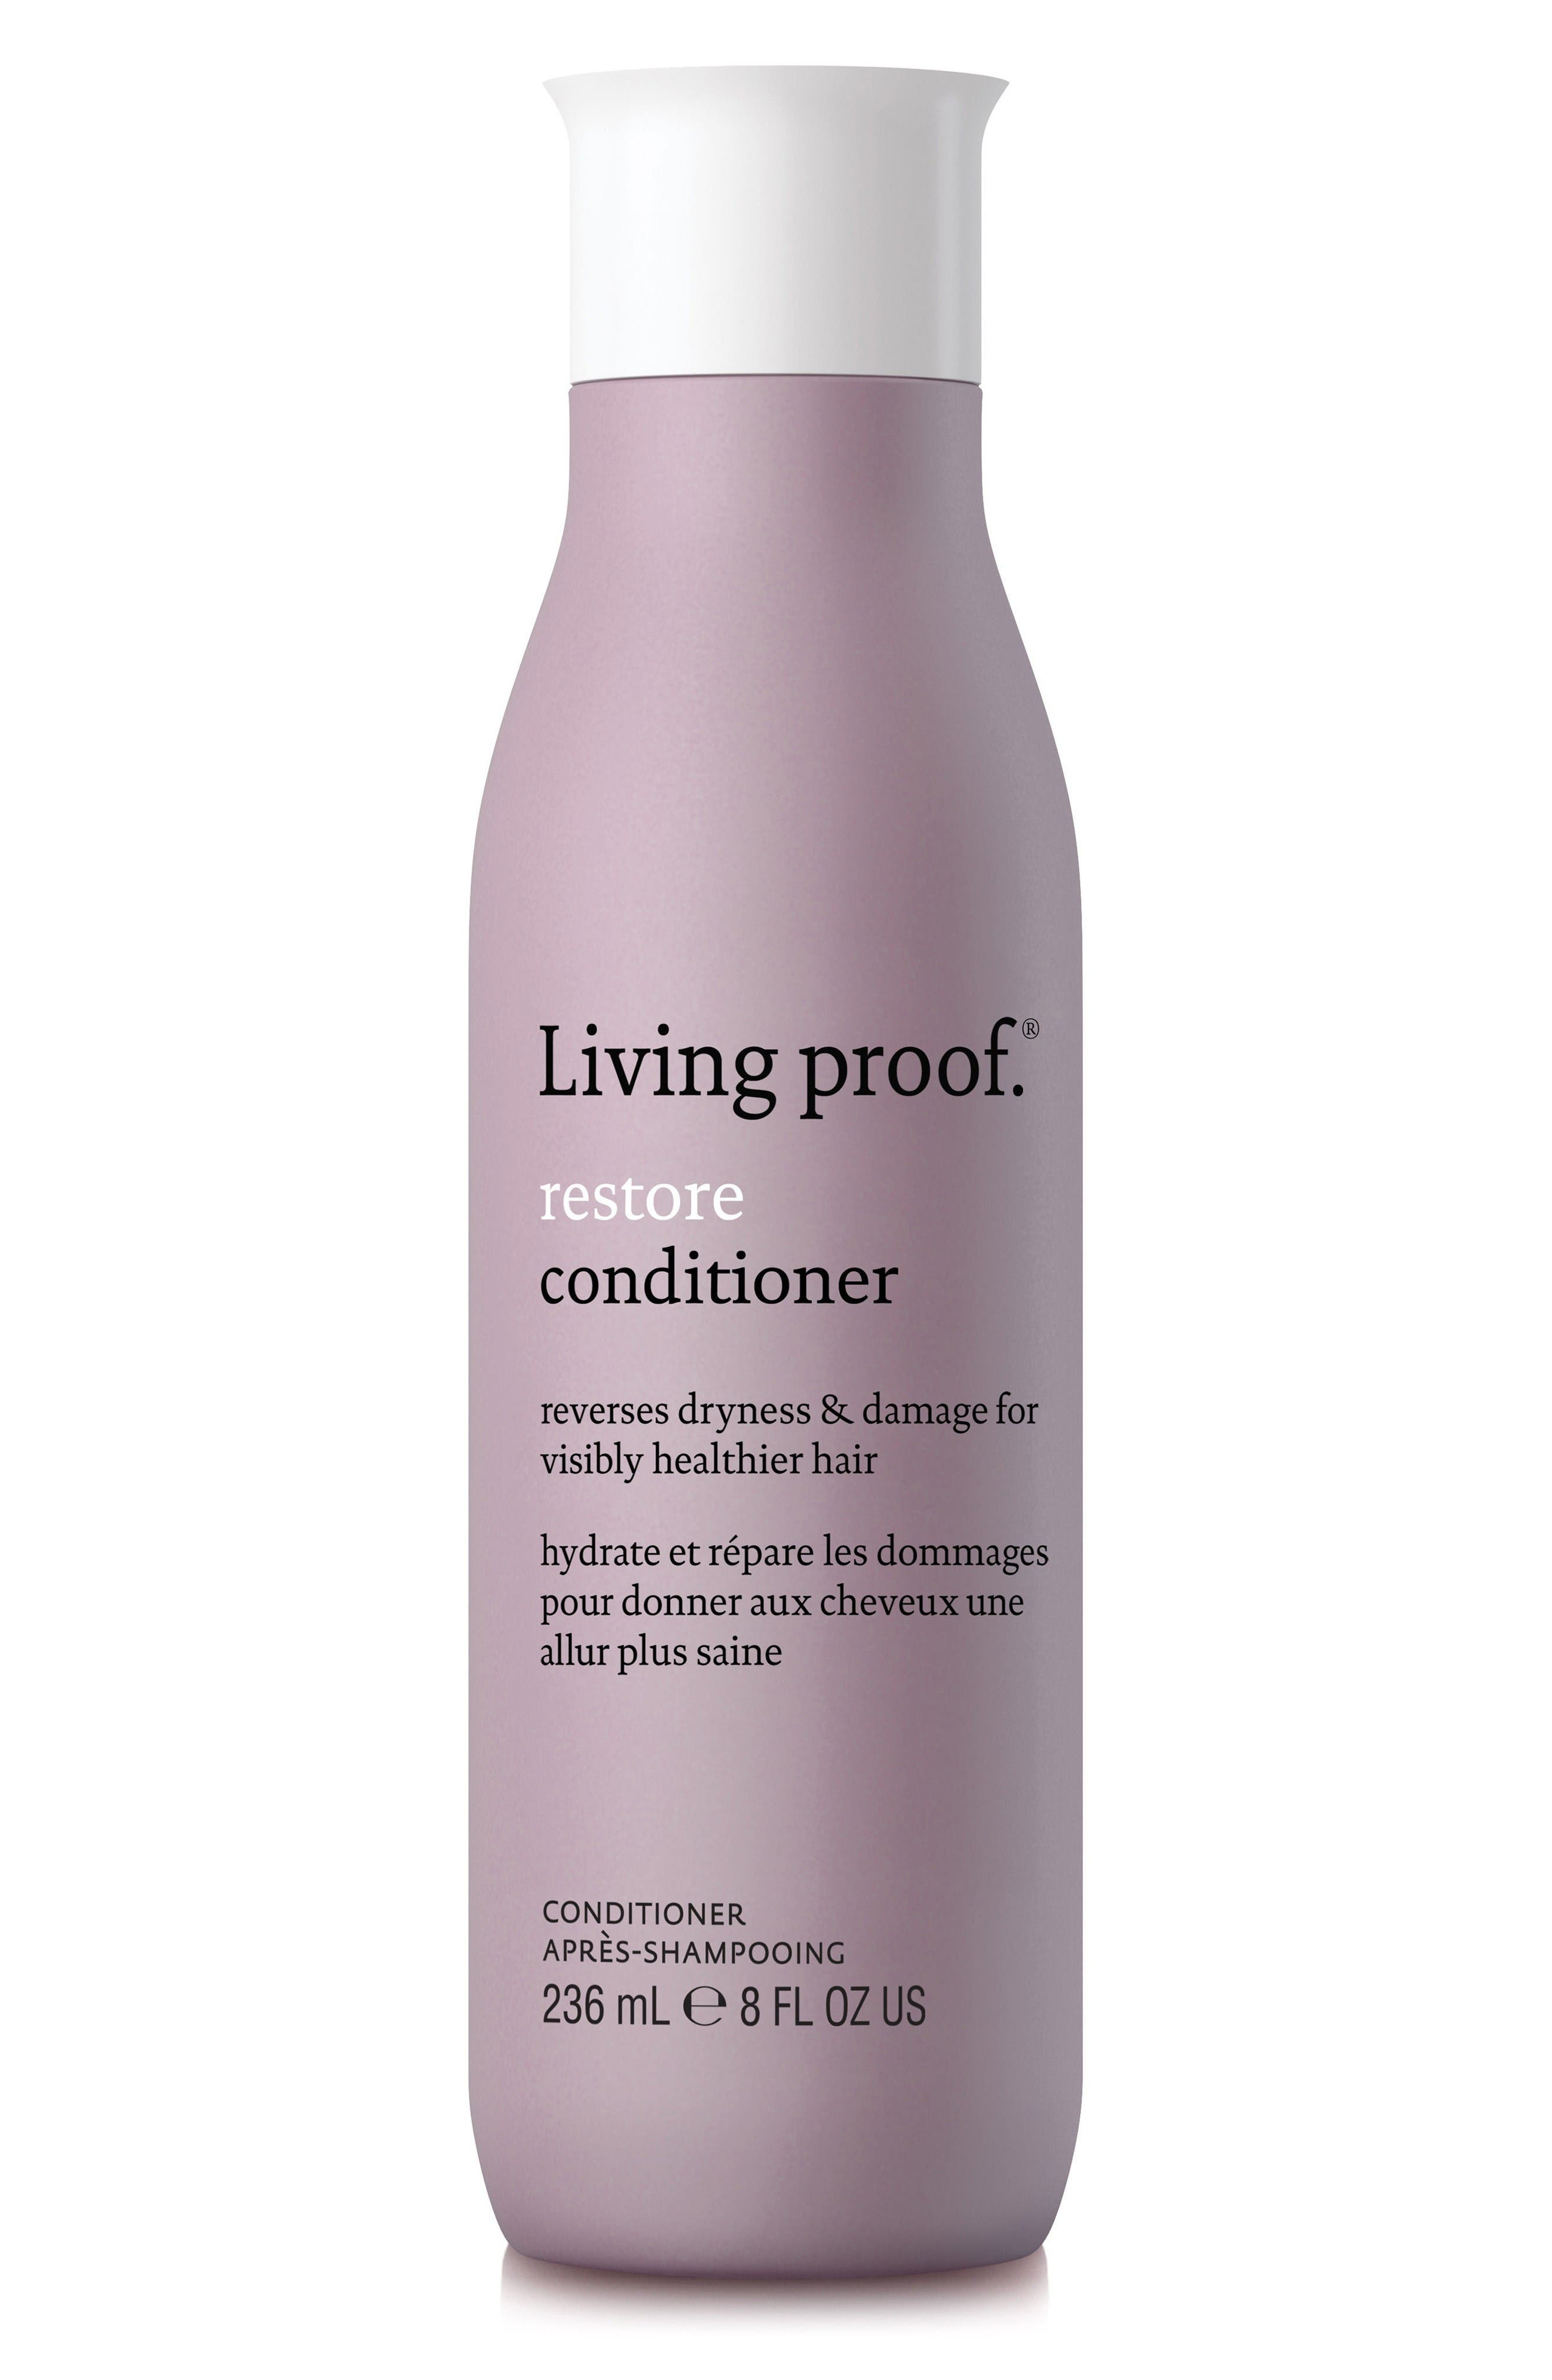 Alternate Image 1 Selected - Living proof® Restore Conditioner